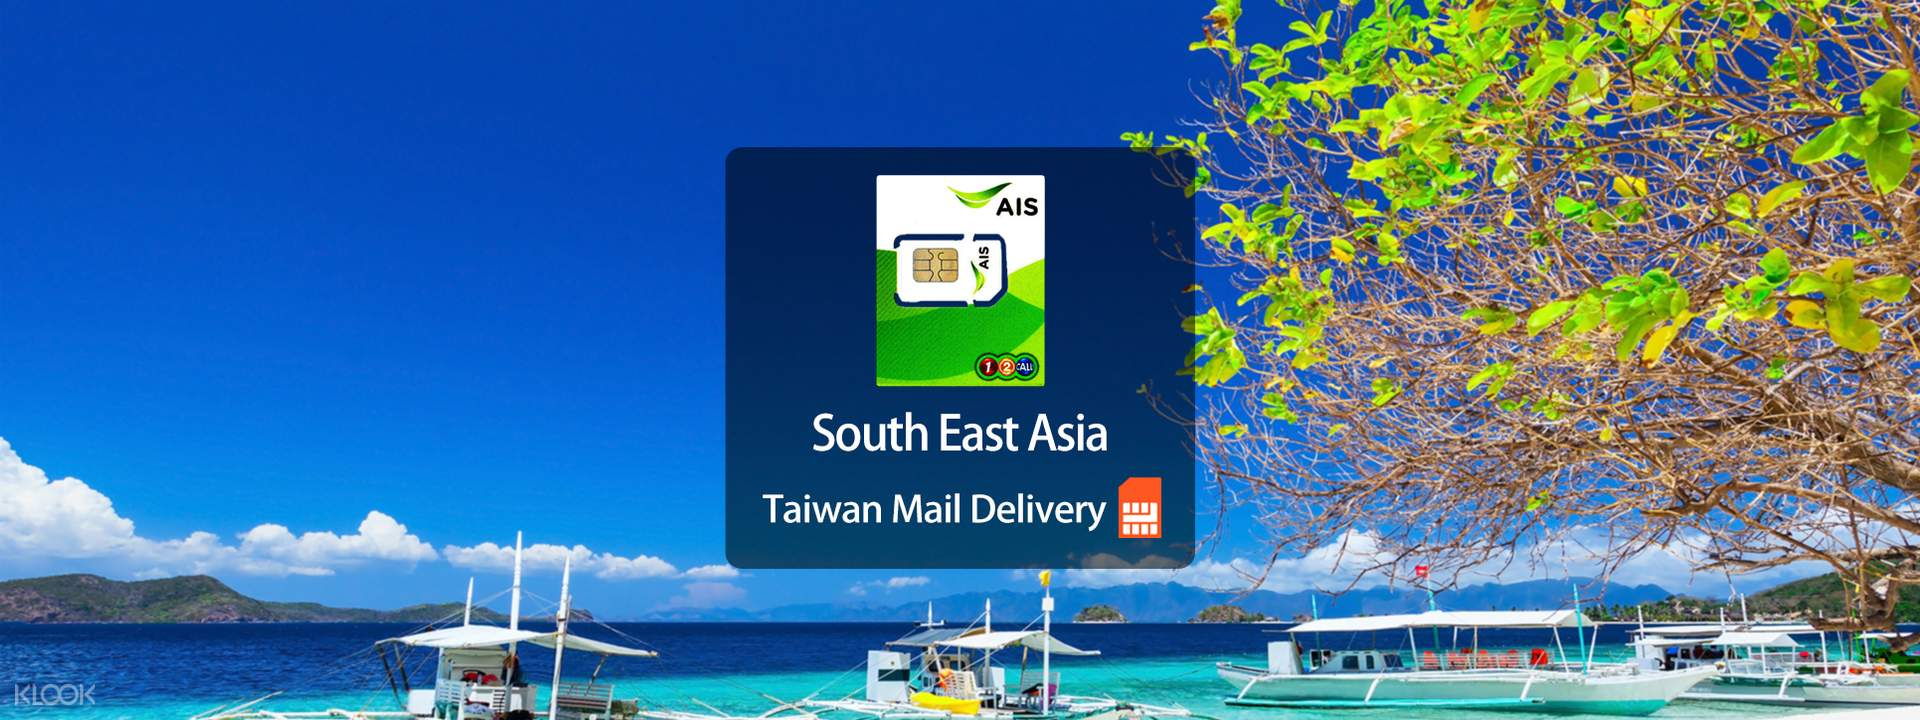 AIS 4G Data SIM Card (Taiwan Home Delivery) for Southeast